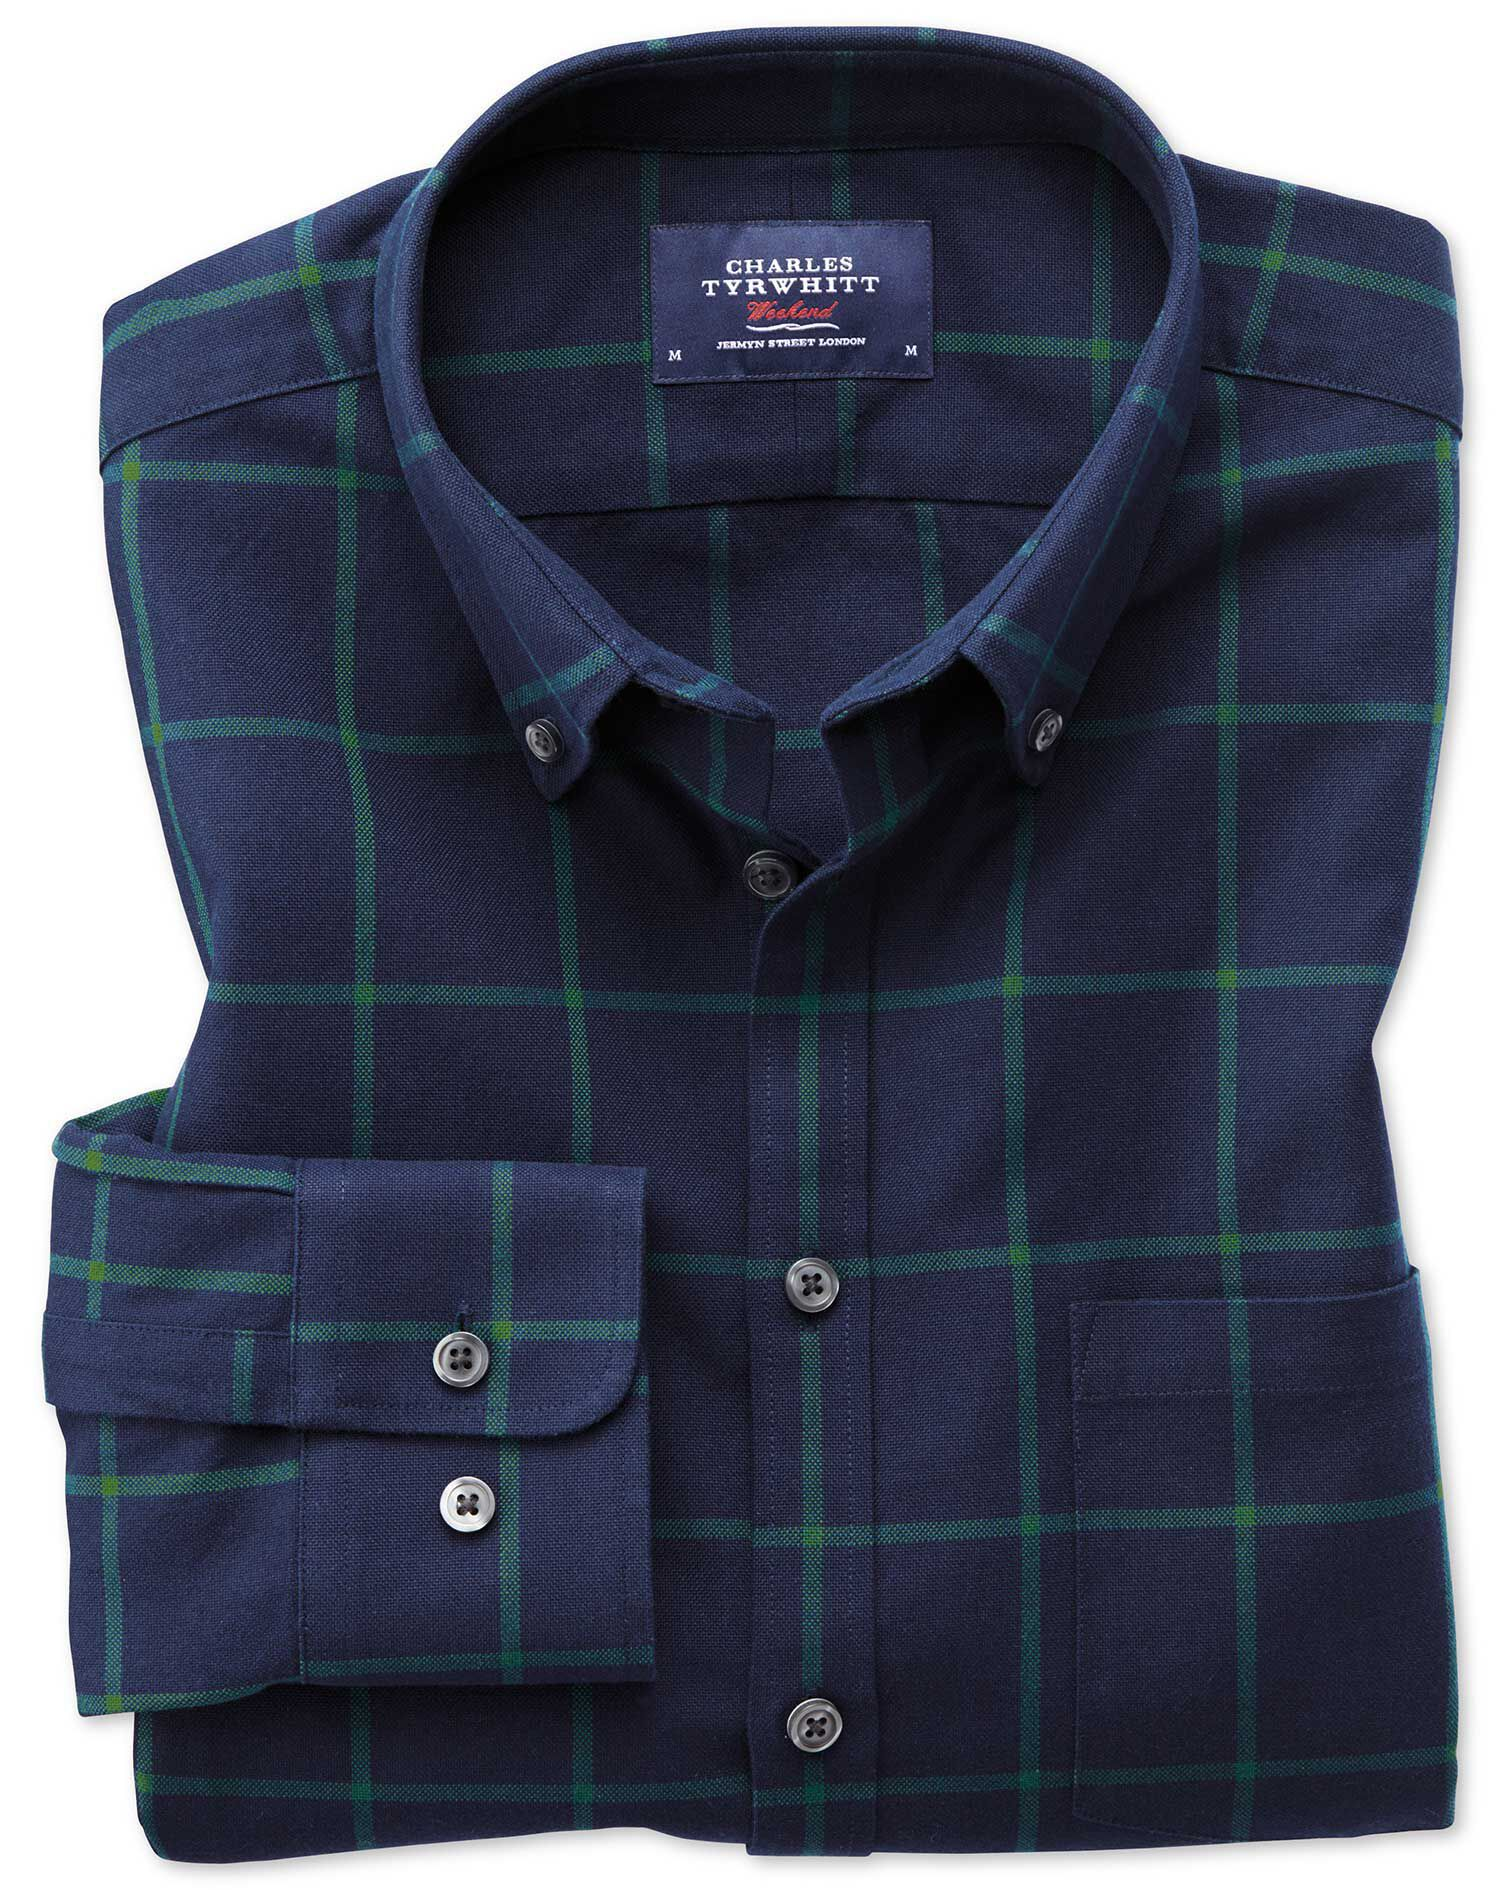 Slim Fit Button-Down Washed Oxford Navy Blue and Green Check Cotton Shirt Single Cuff Size Small by